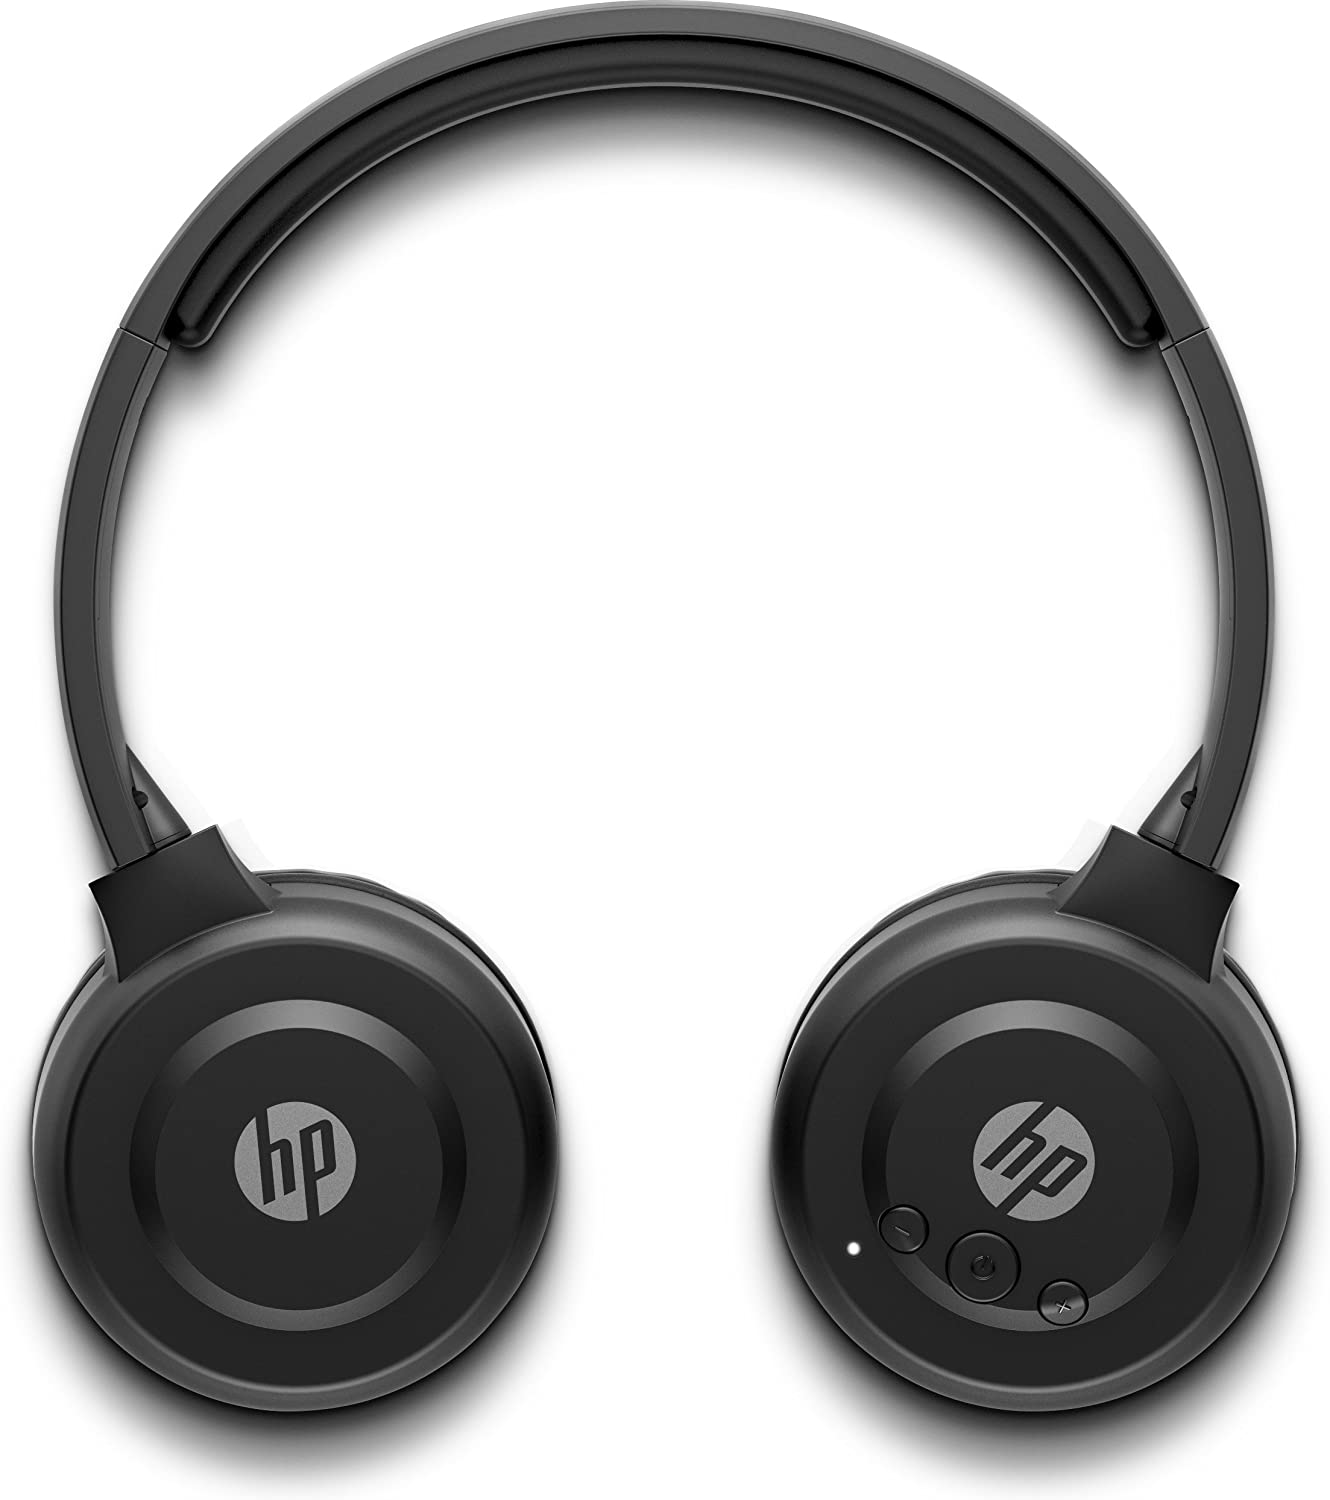 Amazon In Buy Hp Pavilion Bluetooth Headset 600 Black Online At Low Prices In India Hp Reviews Ratings